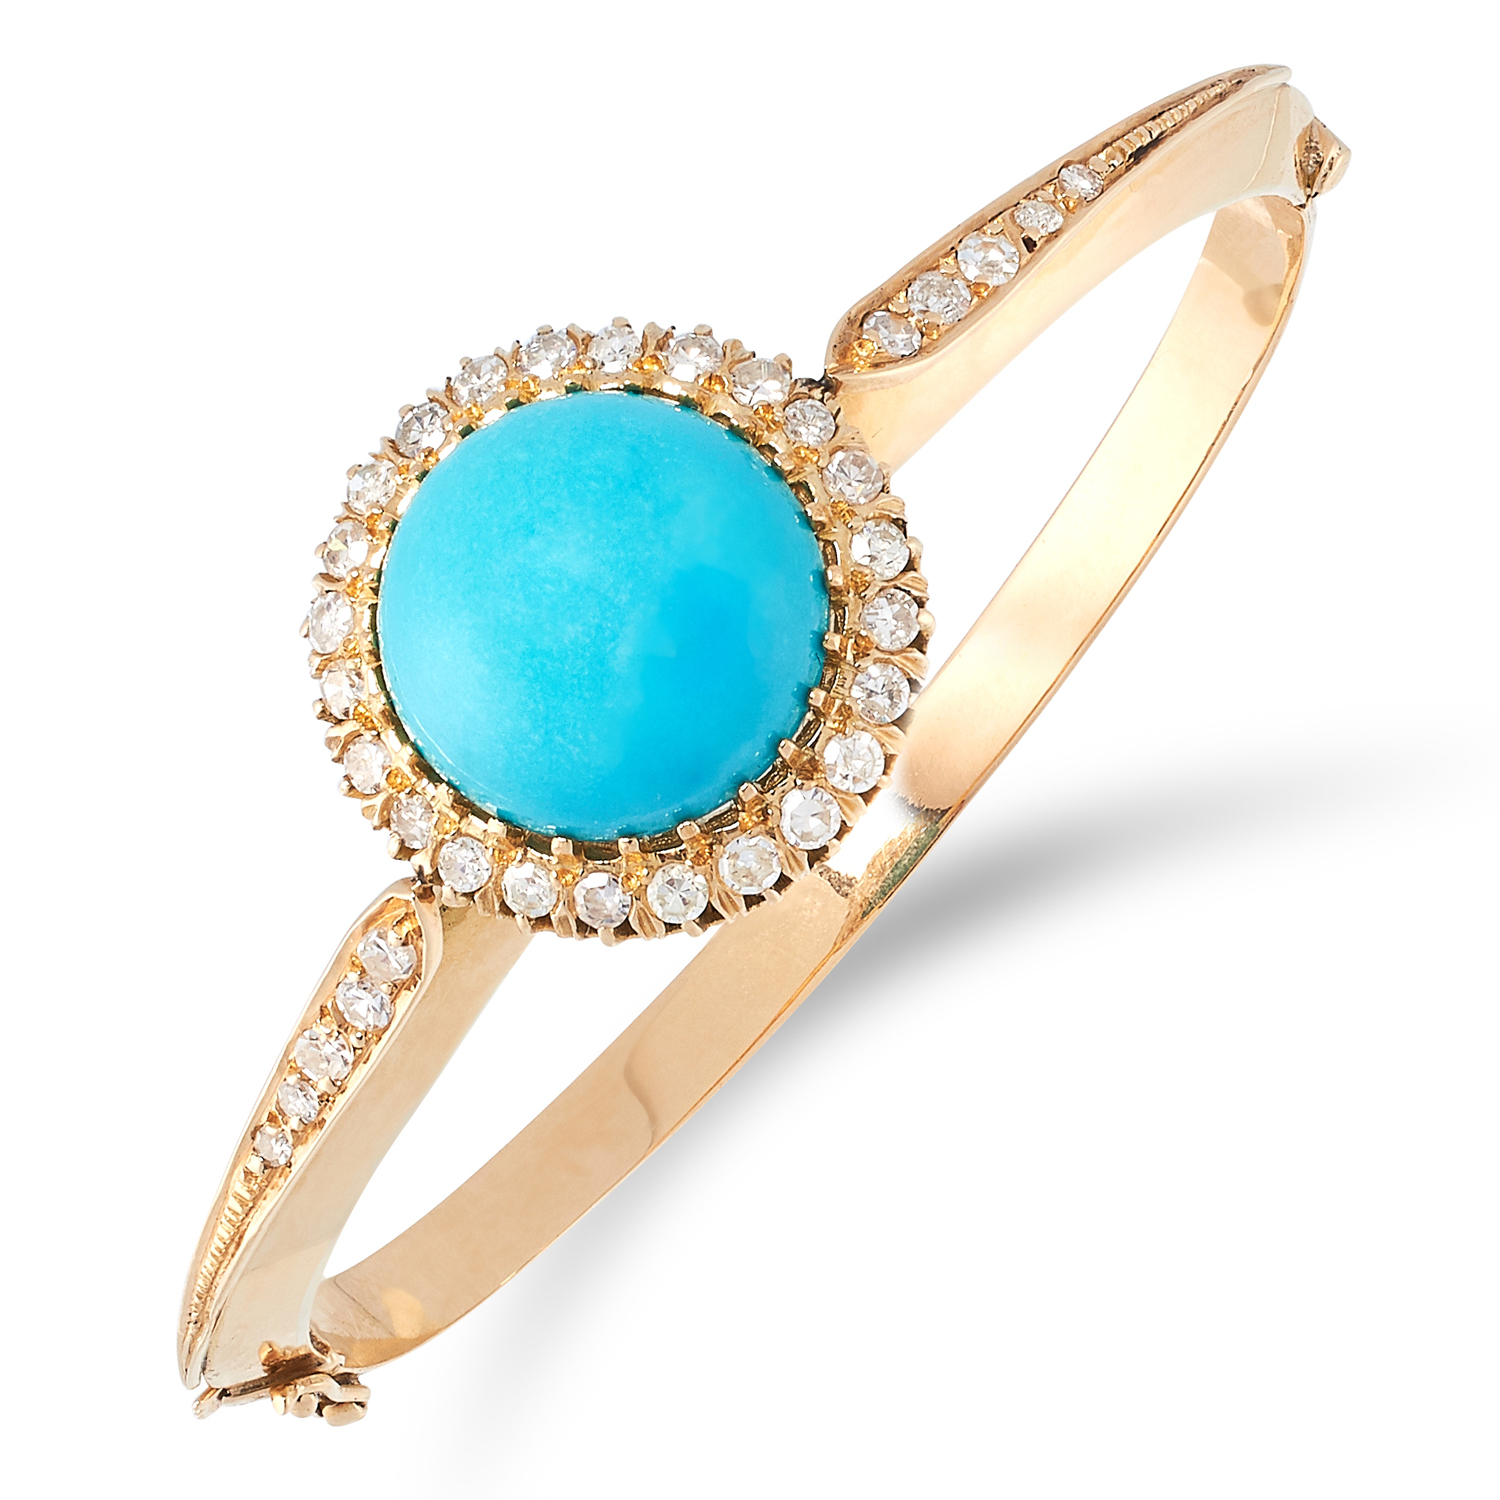 A TURQUOISE AND DIAMOND BANGLE set with cabochon turquoise in a border of round cut diamonds, French